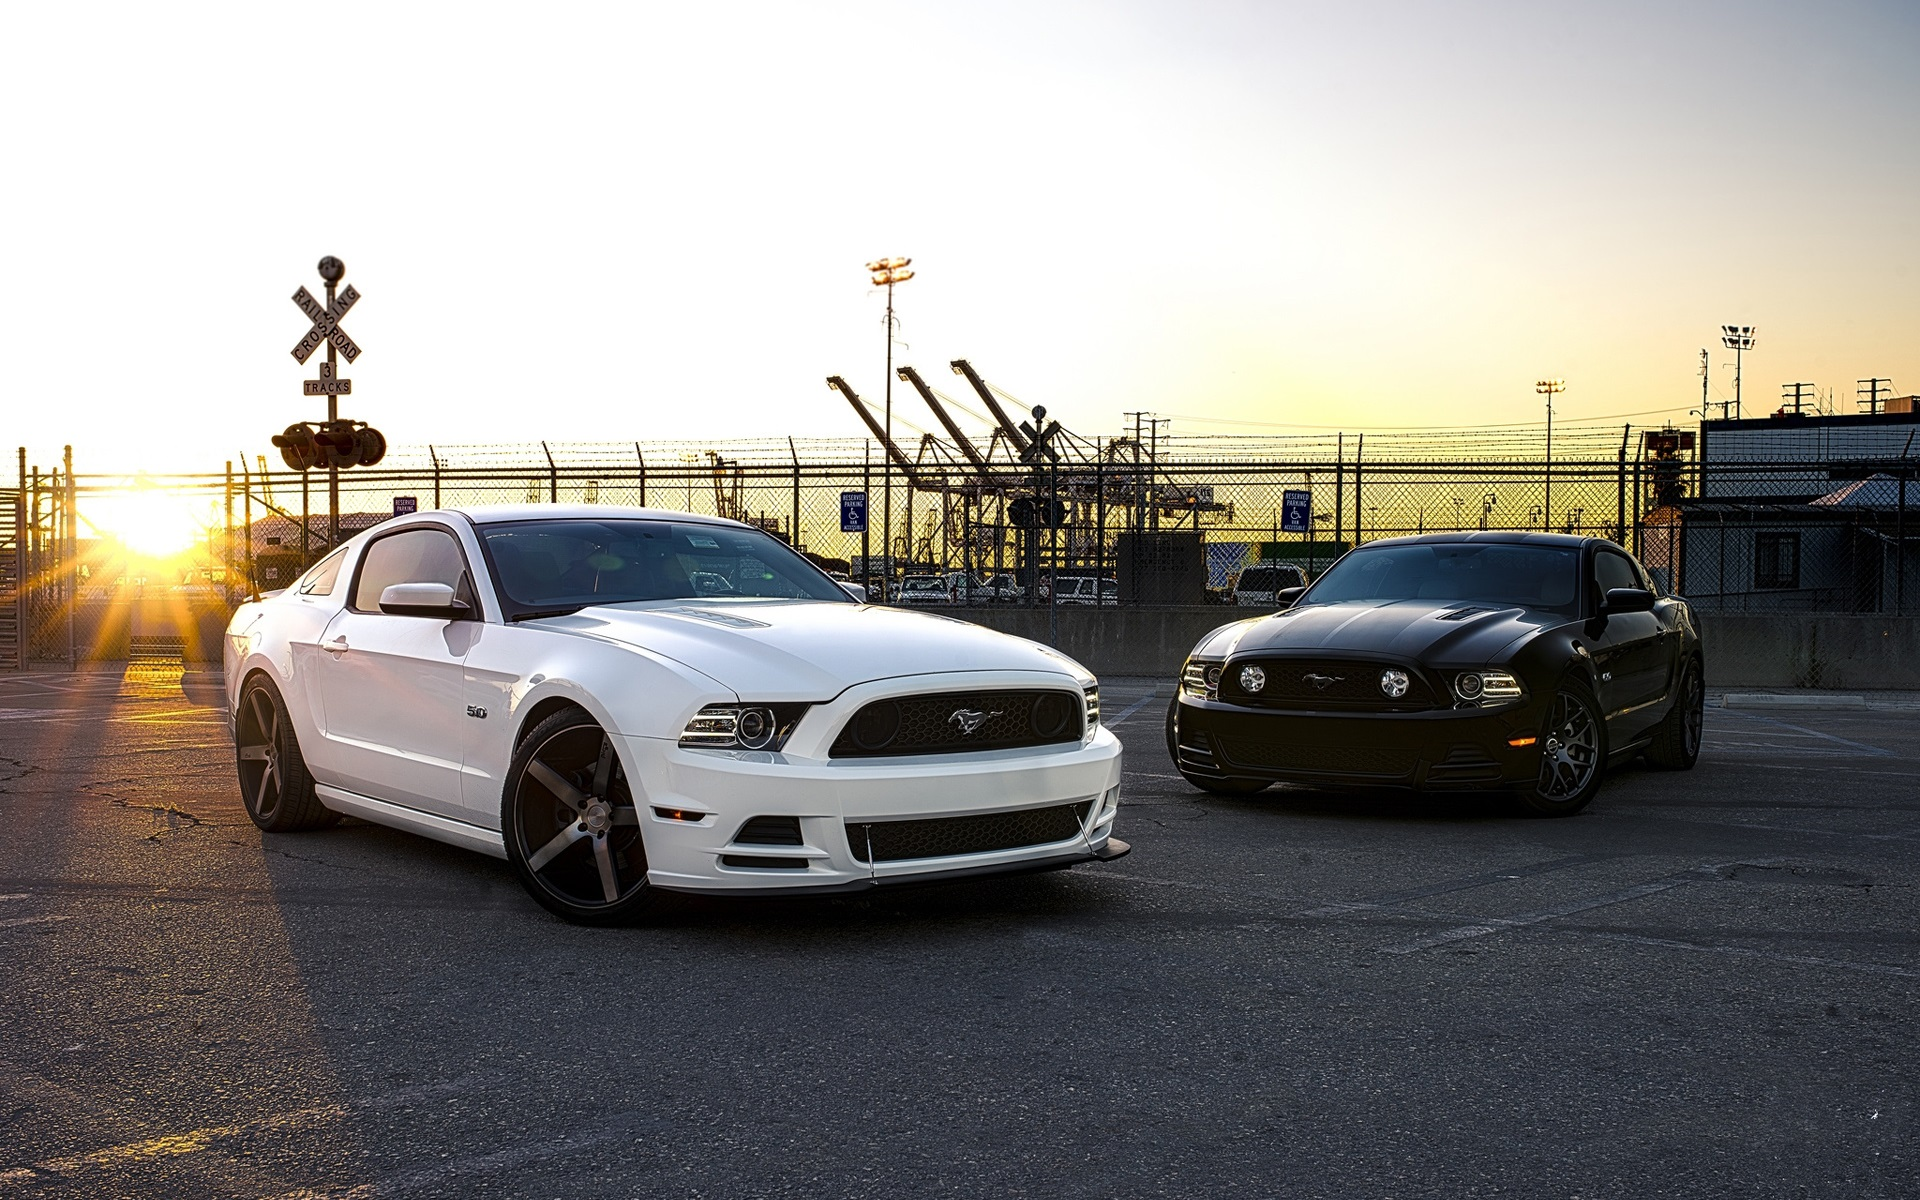 Wallpaper Ford Mustang Black And White Cars 1920x1200 Hd Picture Image